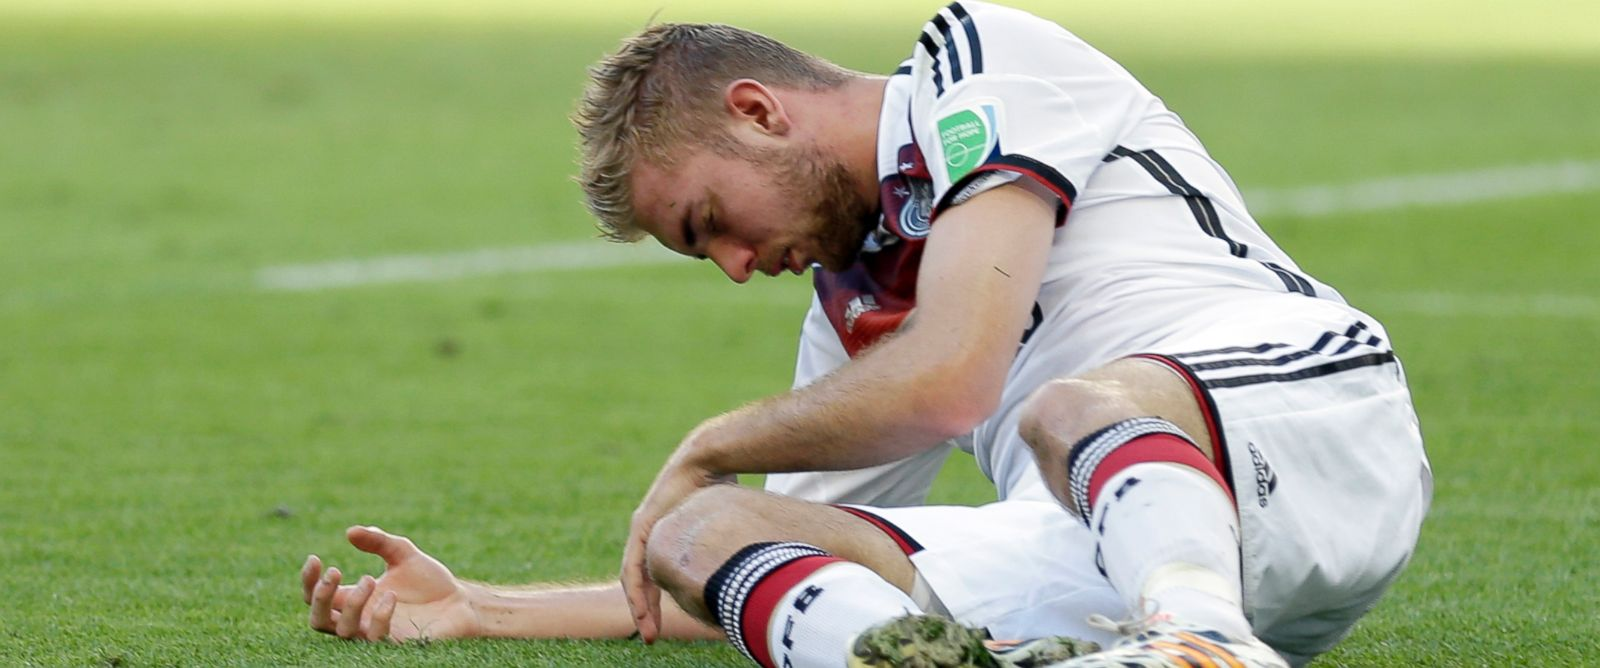 PHOTO: Germanys Christoph Kramer lies on the pitch after getting hit in the face by Argentinas Ezequiel Garays shoulder during the World Cup final soccer match between Germany and Argentina at the Maracana Stadium in Rio de Janeiro, July 13, 2014.